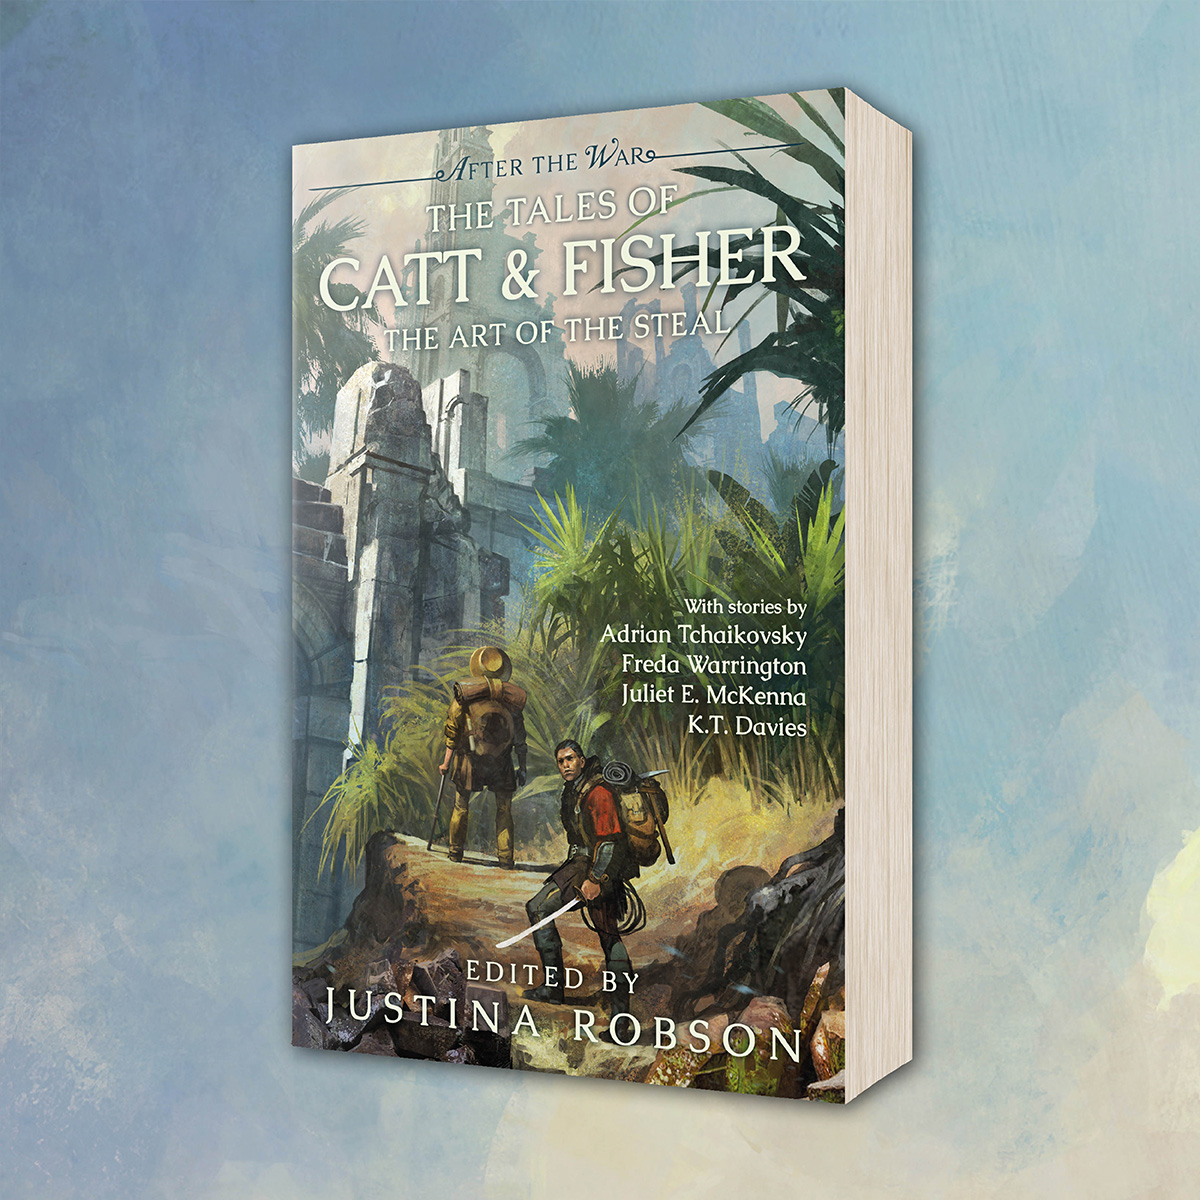 OUT NOW: The Tales of Catt & Fisher edited by Justina Robson